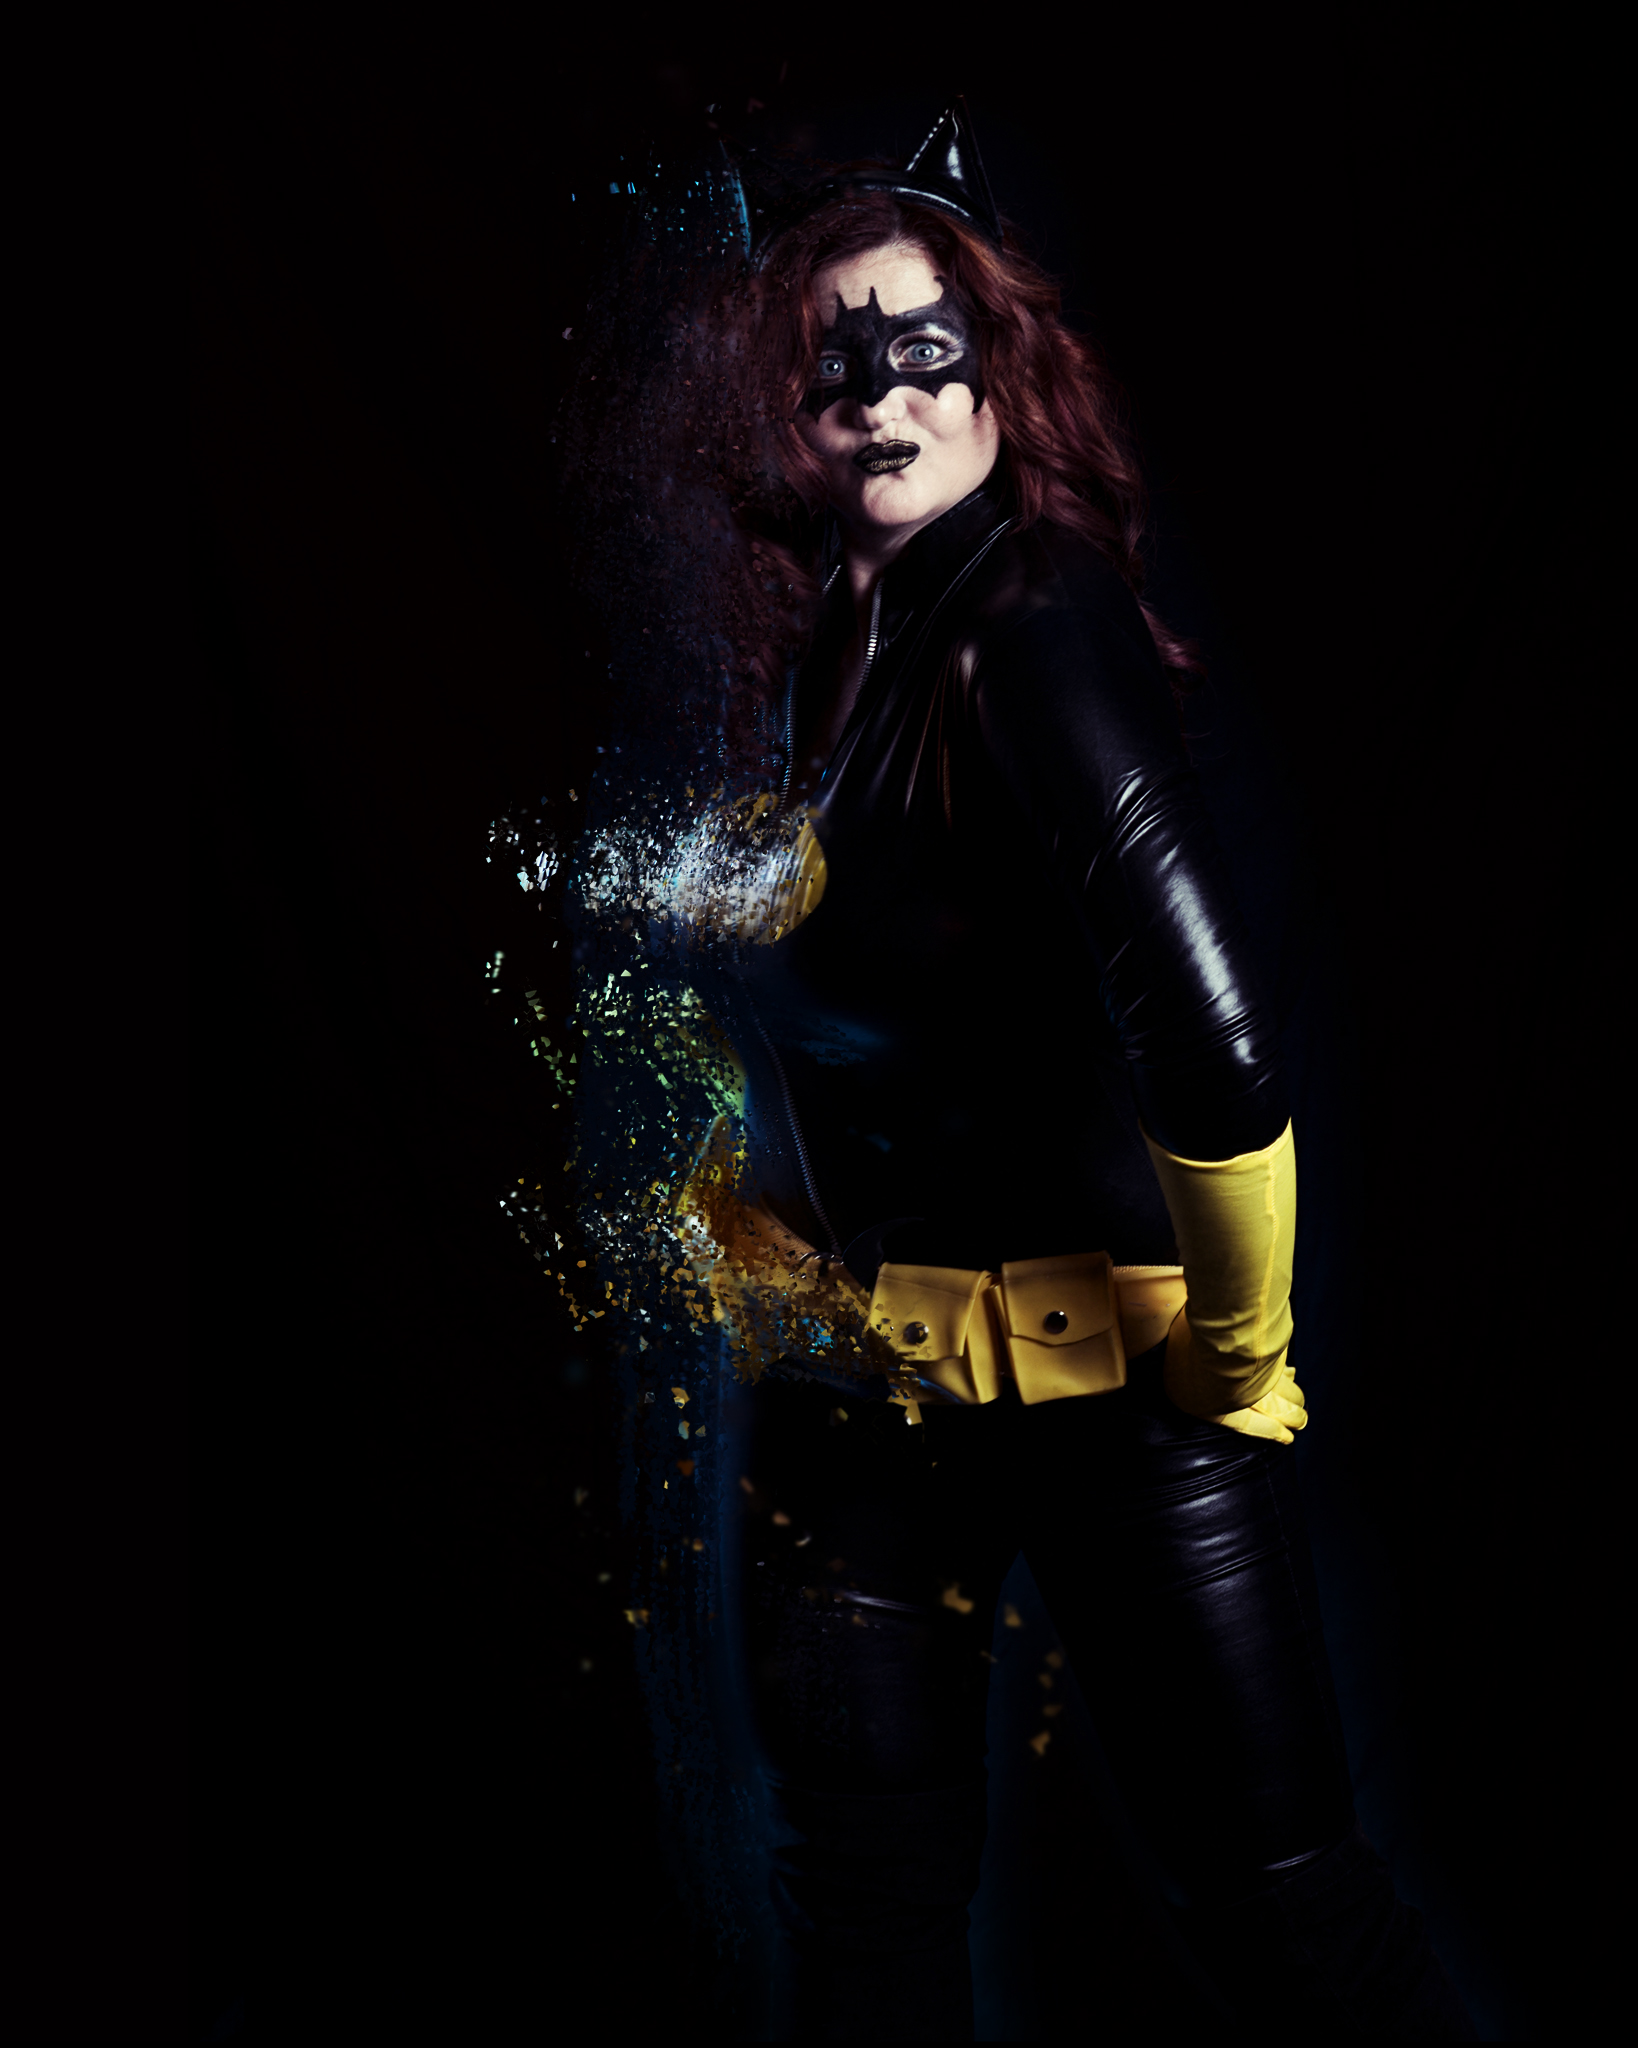 Halloween-014-Edit-Dispersion.jpg